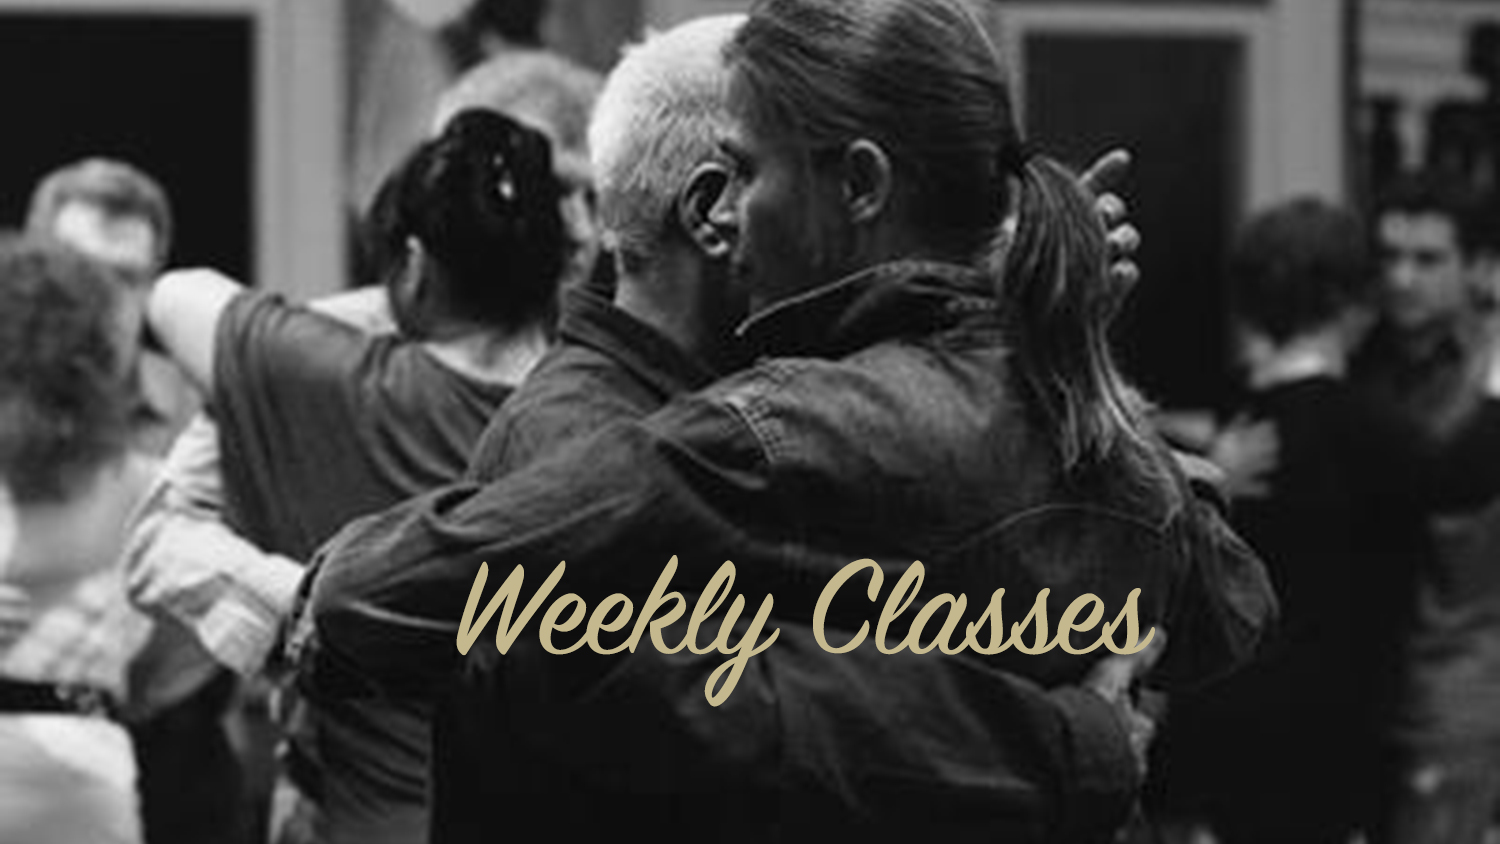 weeklyclasses